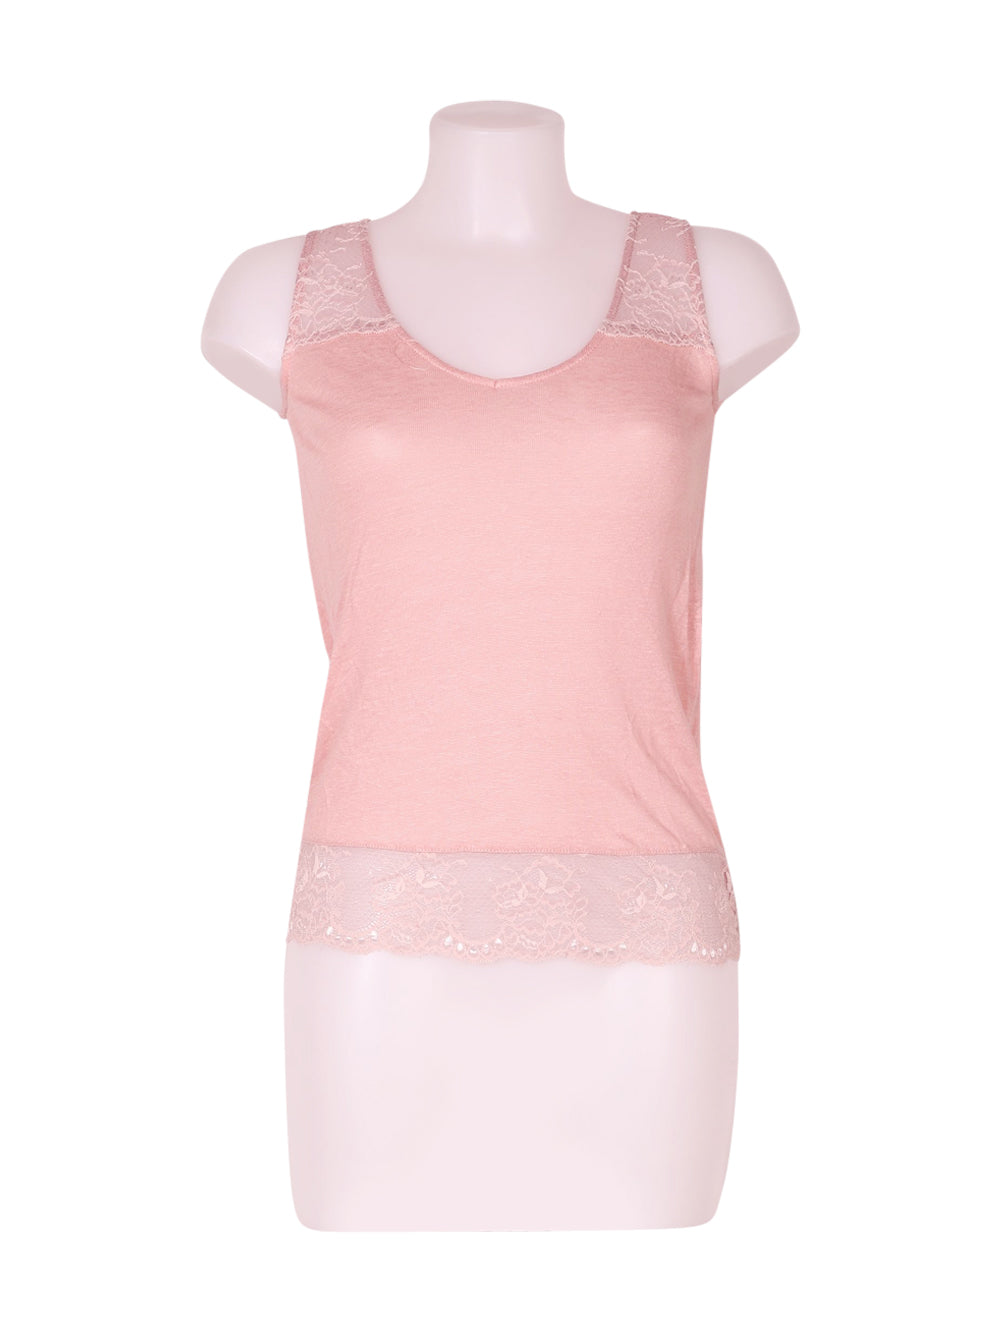 Front photo of Preloved Naf Naf Pink Woman's sleeveless top - size 6/XS